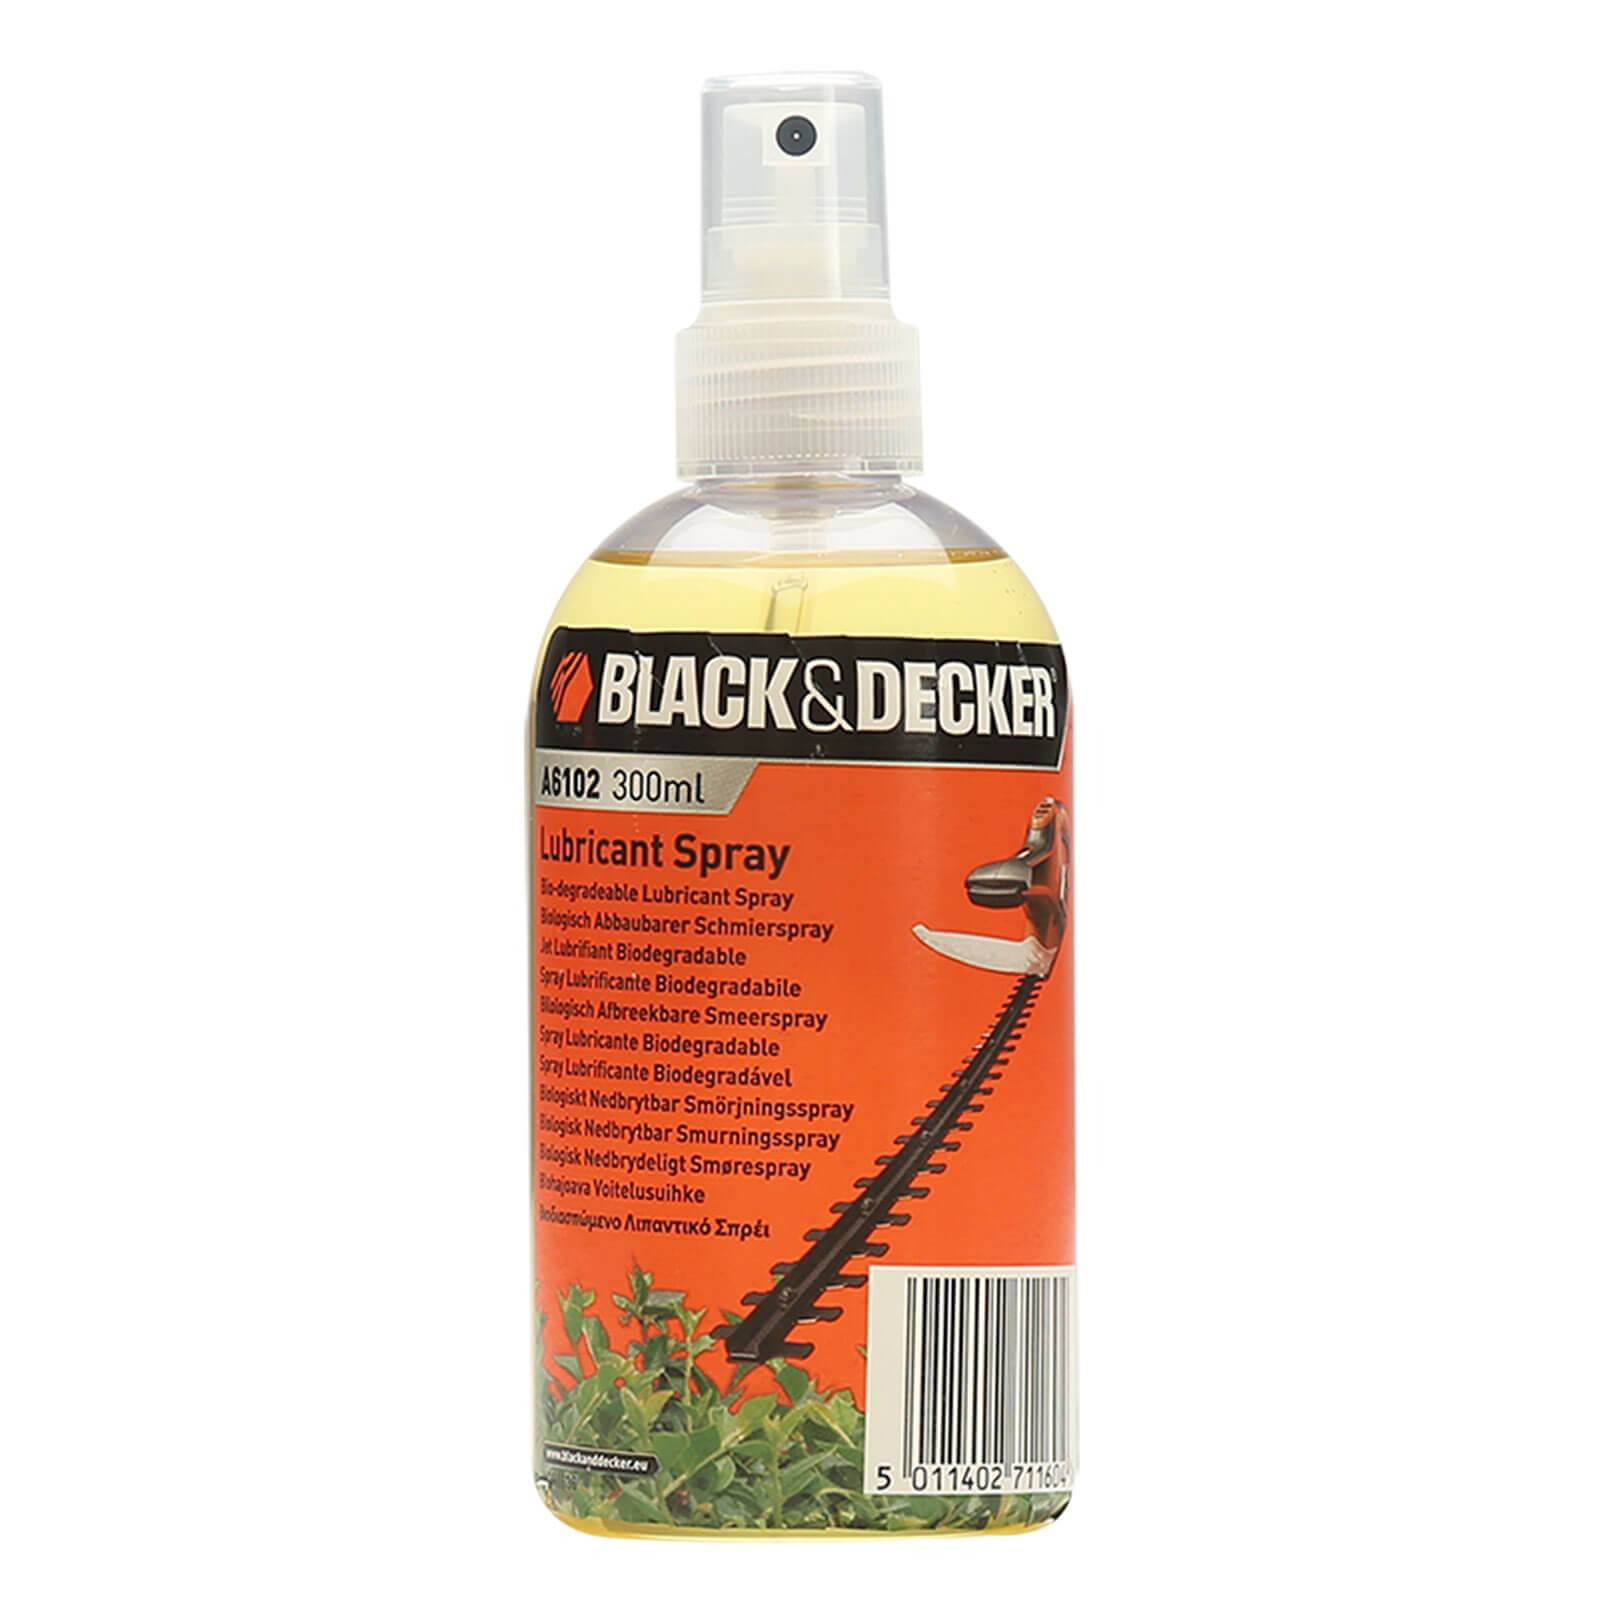 Black & Decker 300ml Oil Lubricant Spray for All Hedge Trimmers